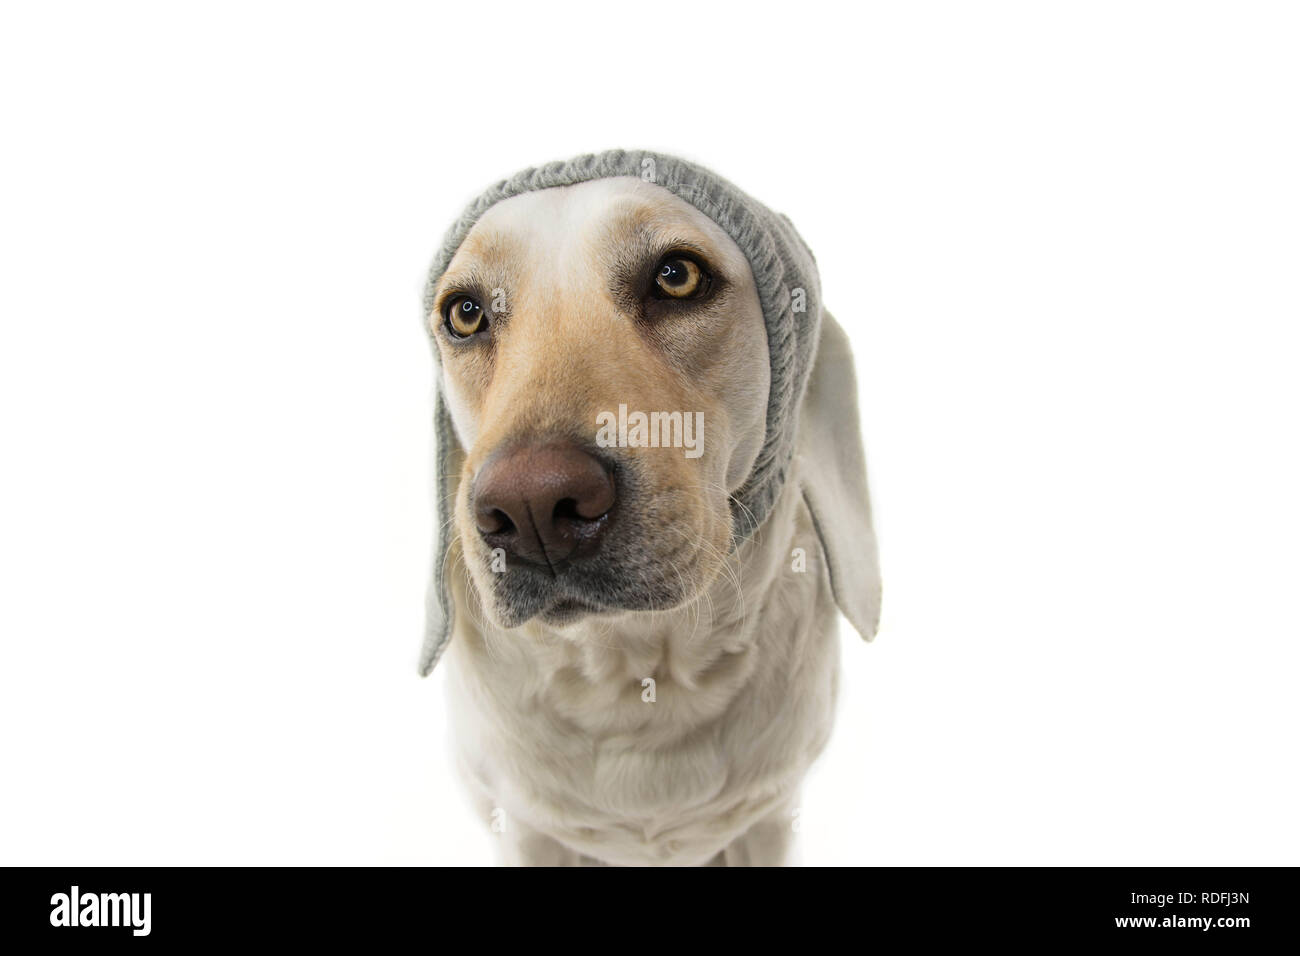 FUNNY EASTER DOG. LABRADOR PUPPY WITH RABBIT EARS. ISOLATED STUDIO SHOT AGAINST WHITE BACKGROUND. - Stock Image